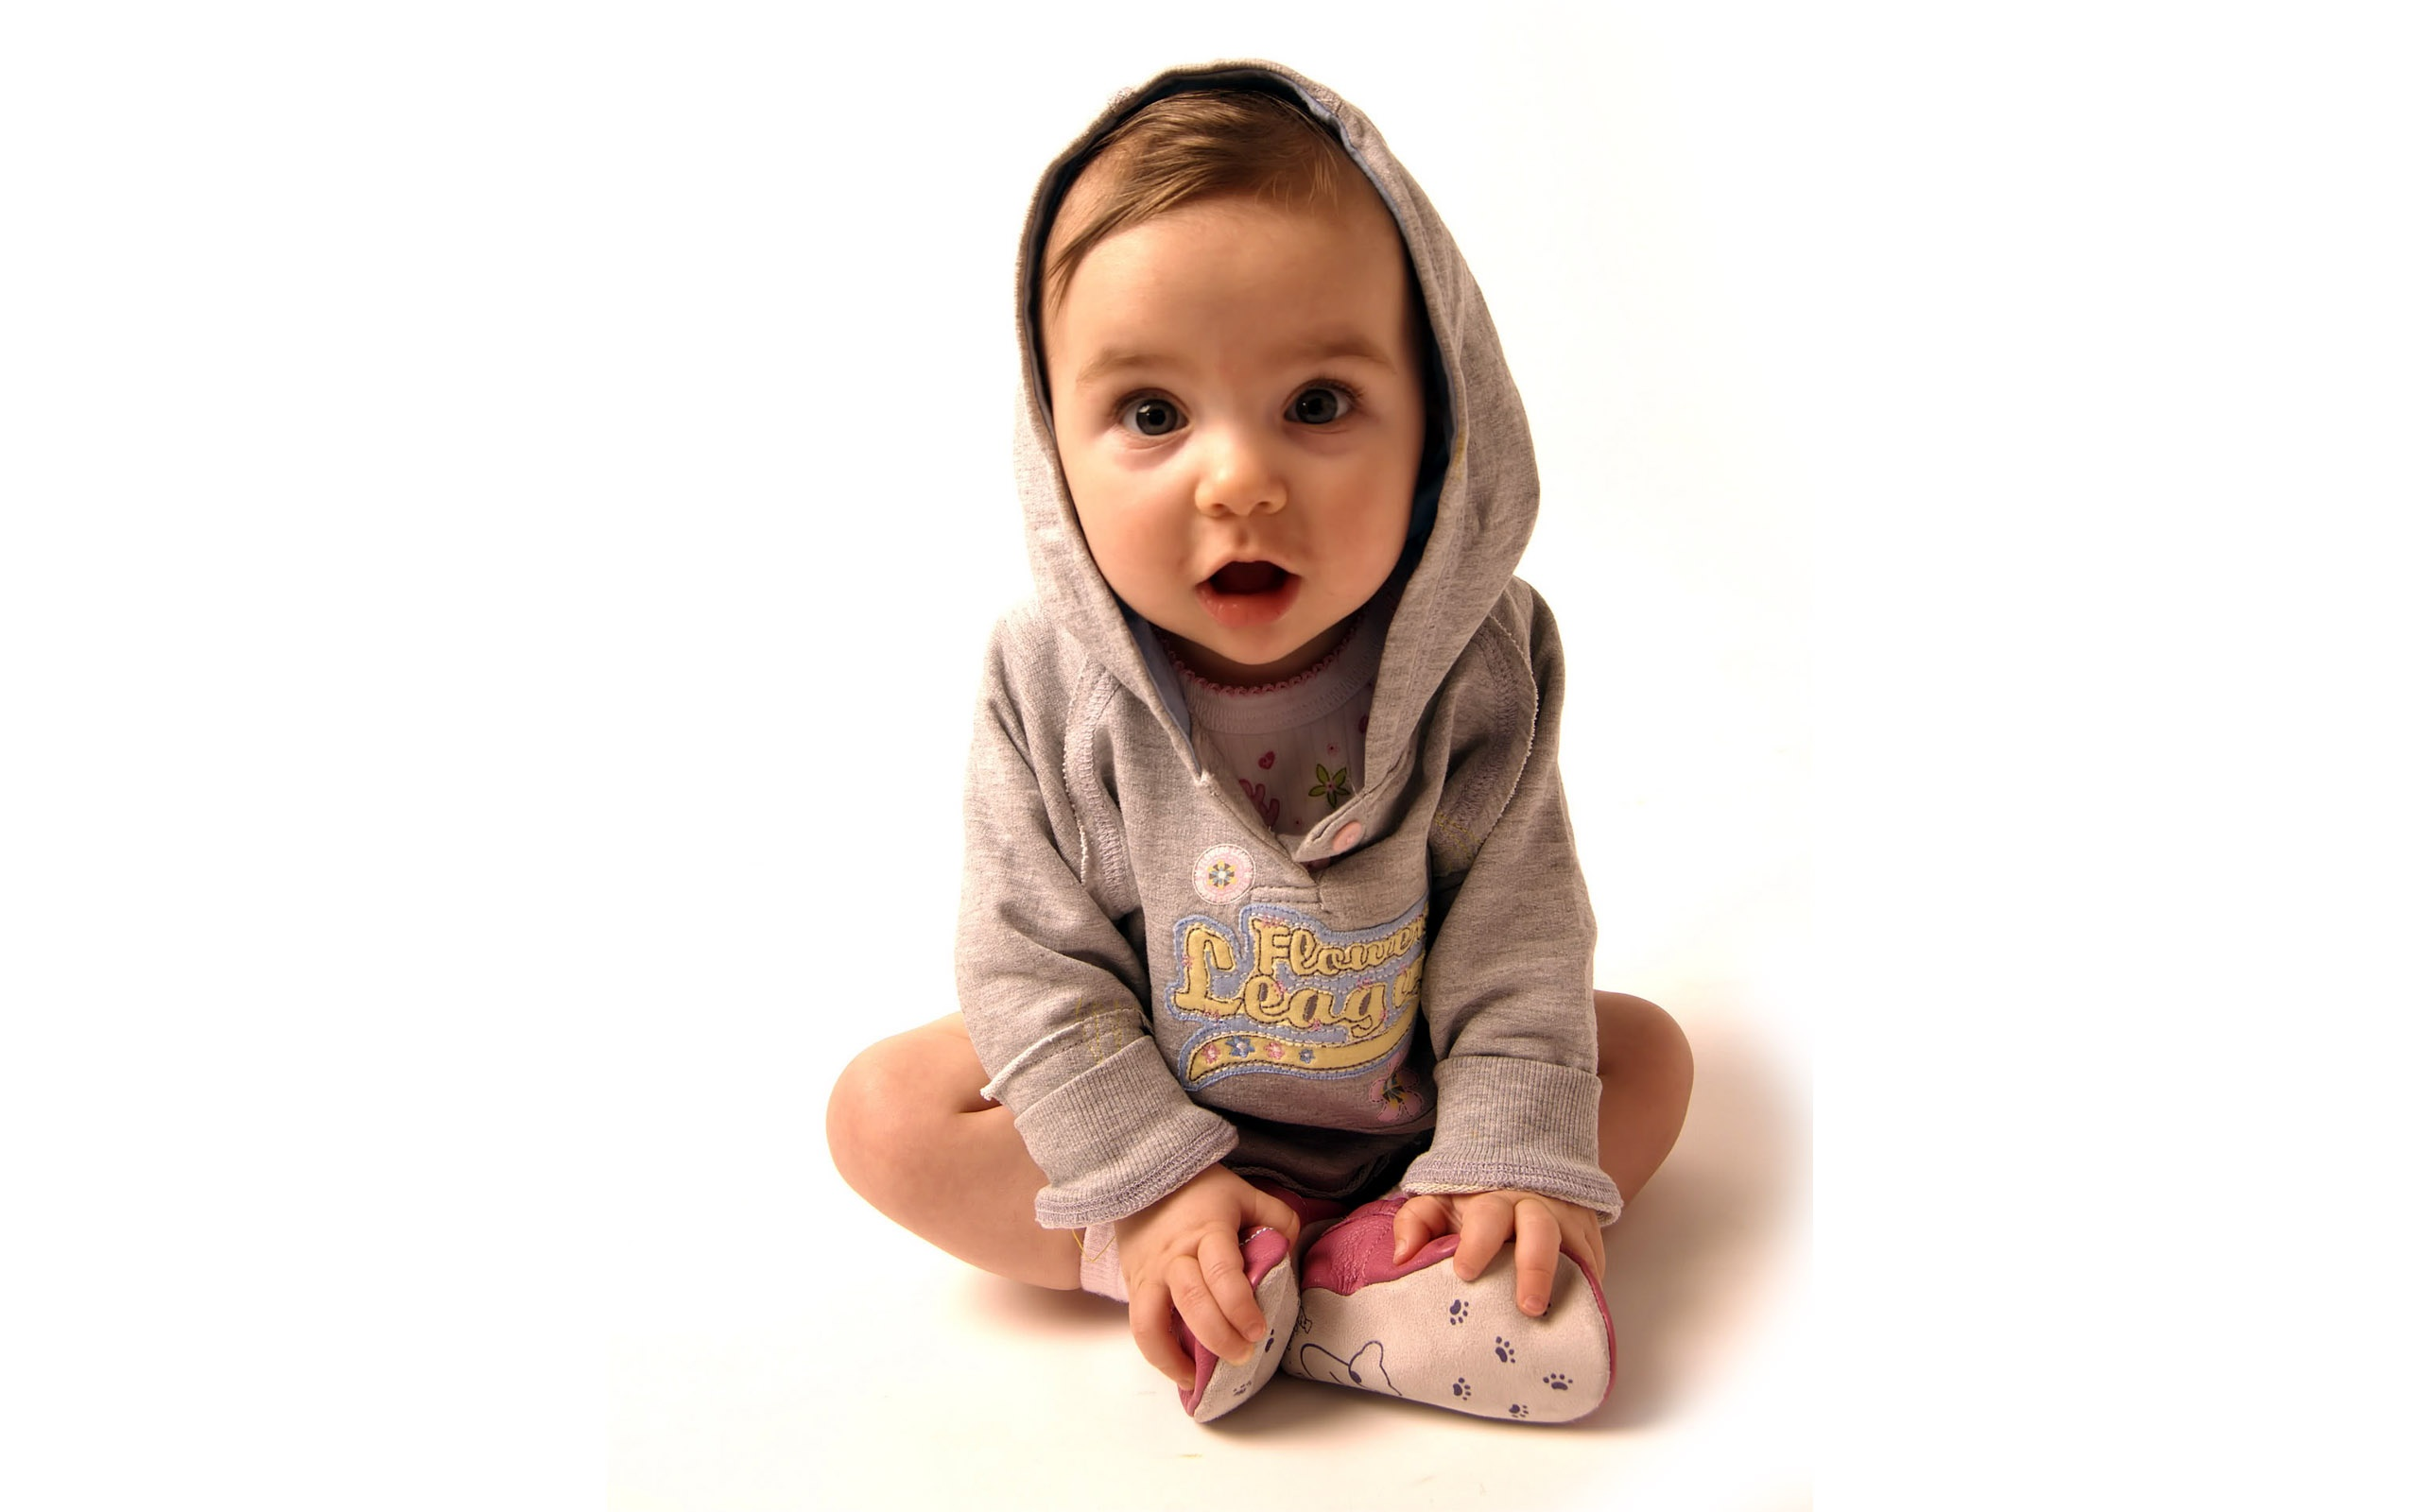 cute_little_baby_boy-2560x1600.jpg